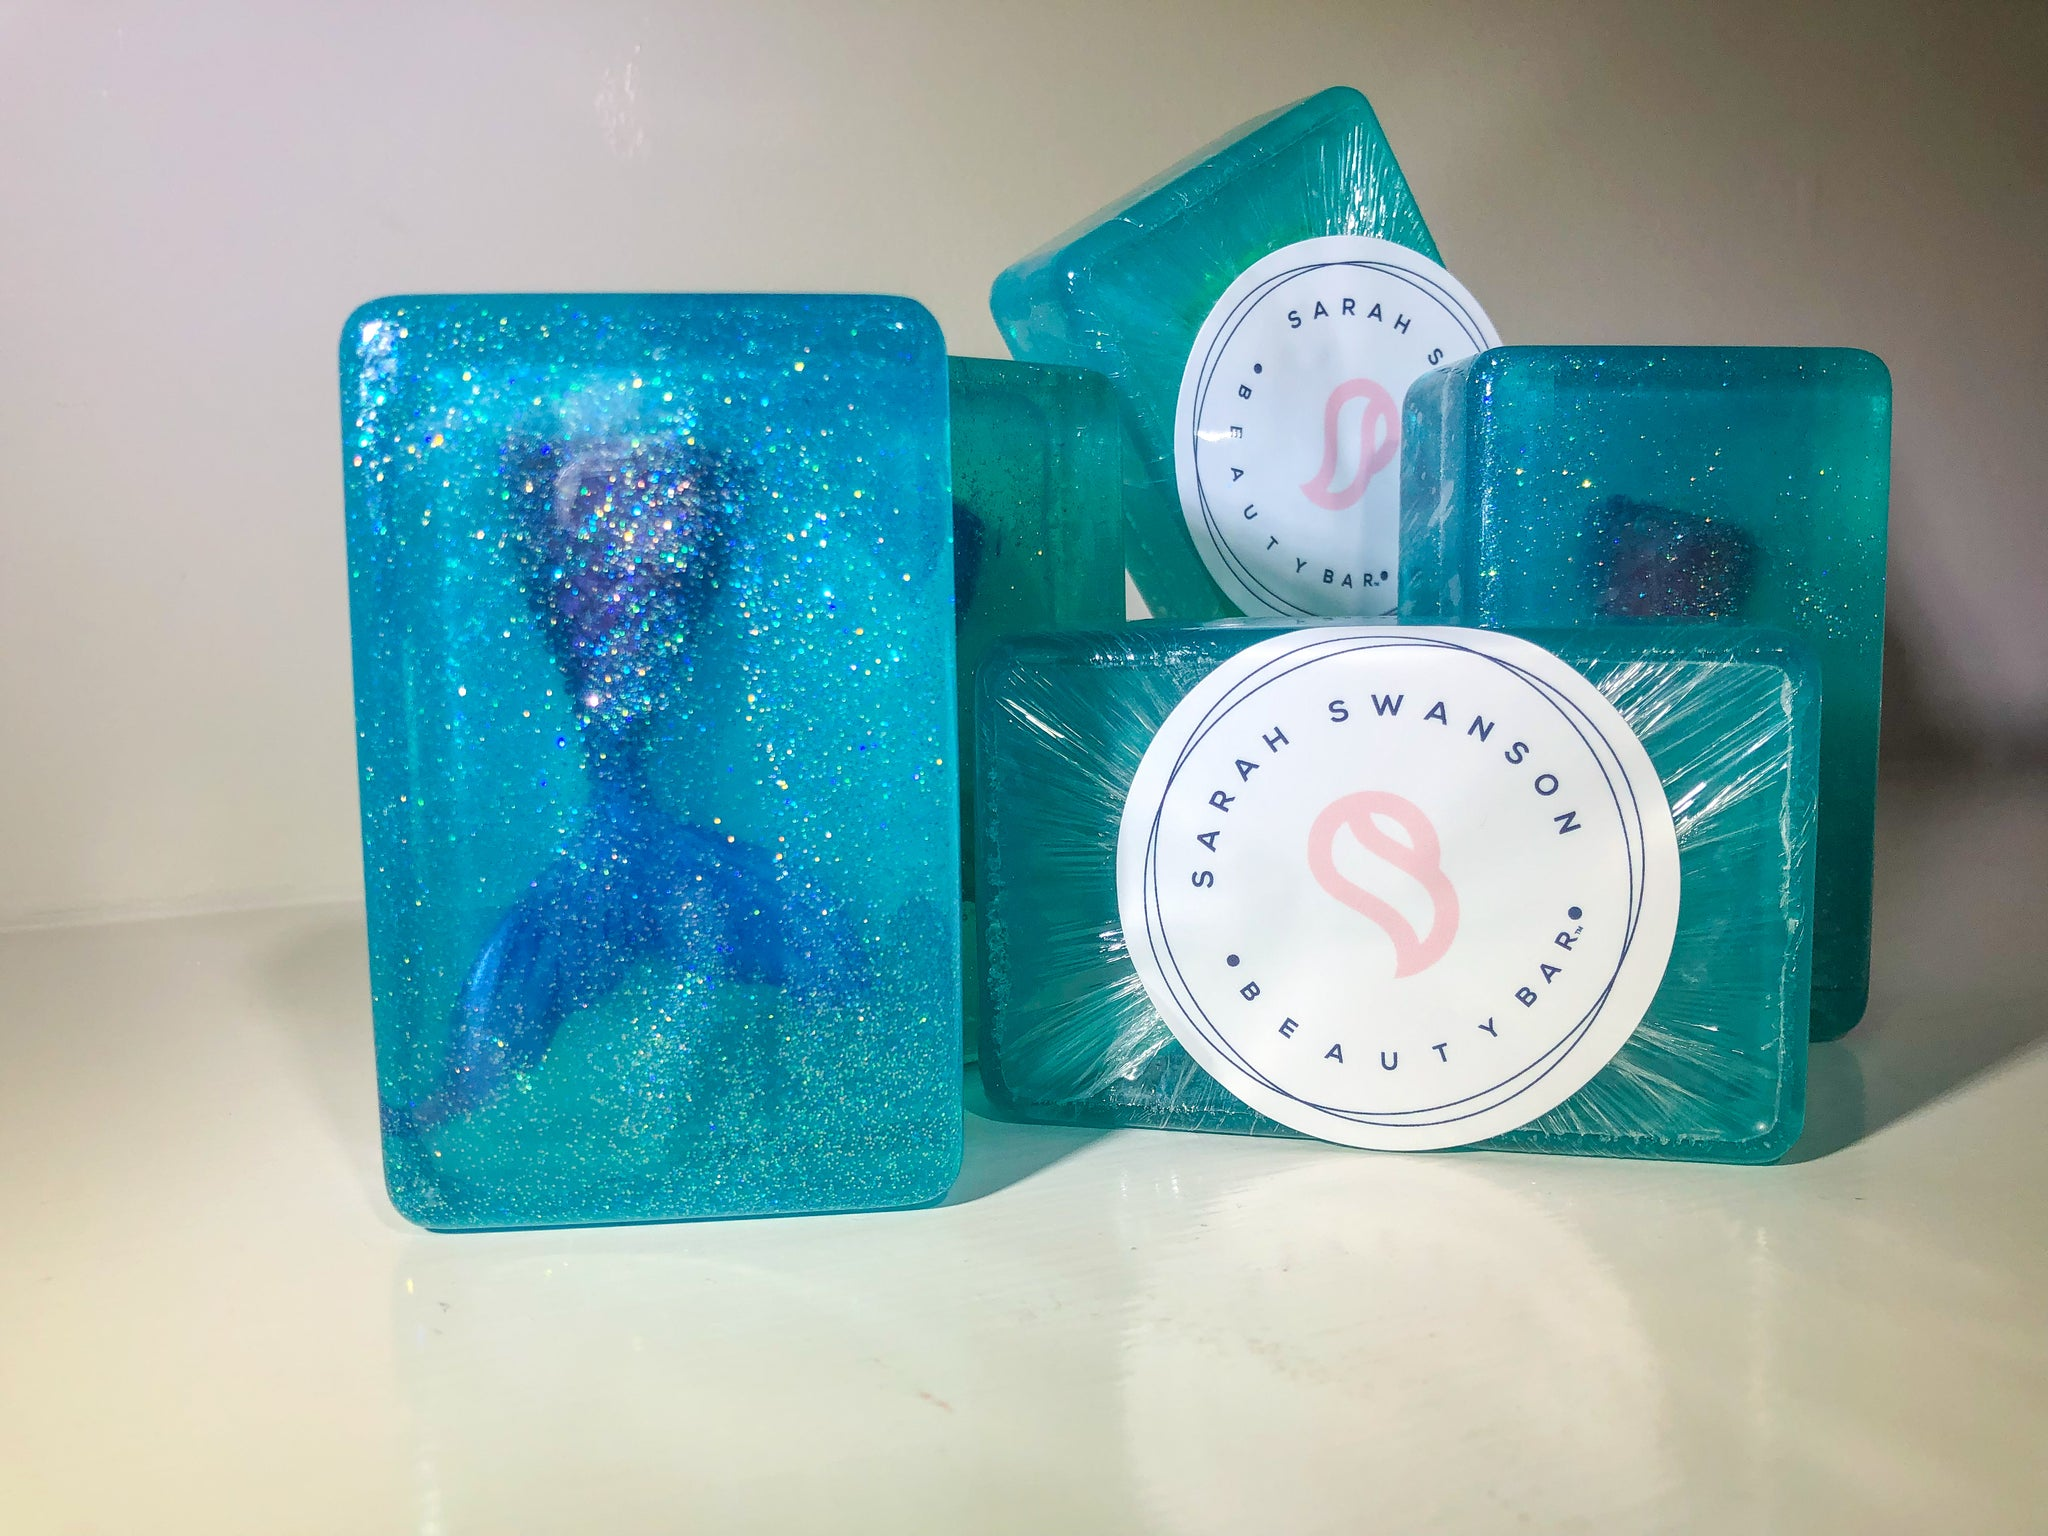 Mermaid Glitter Bath Soap